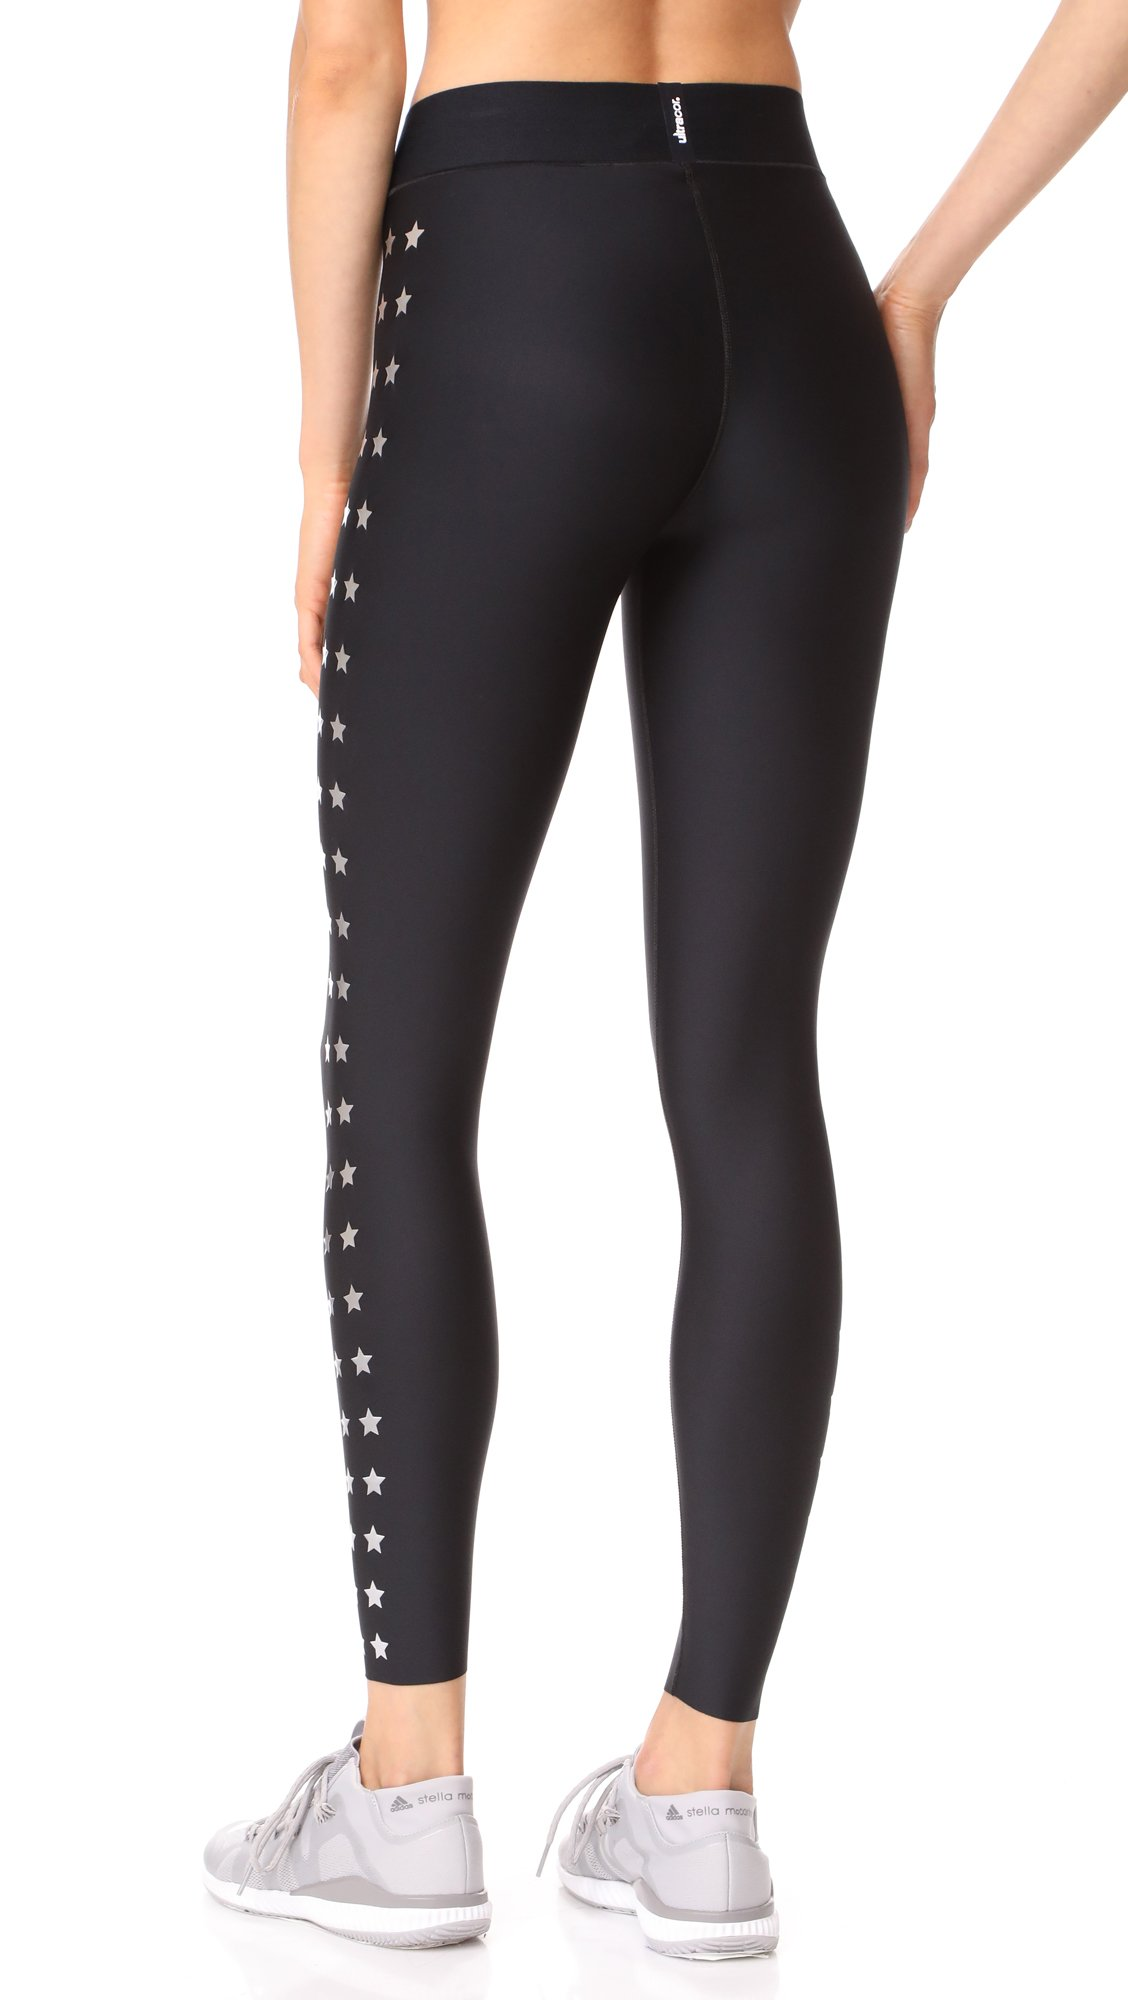 Ultracor Women's Ultra Matte Flash Knockout Leggings, Nero/Silver, X-Small by Ultracor (Image #2)